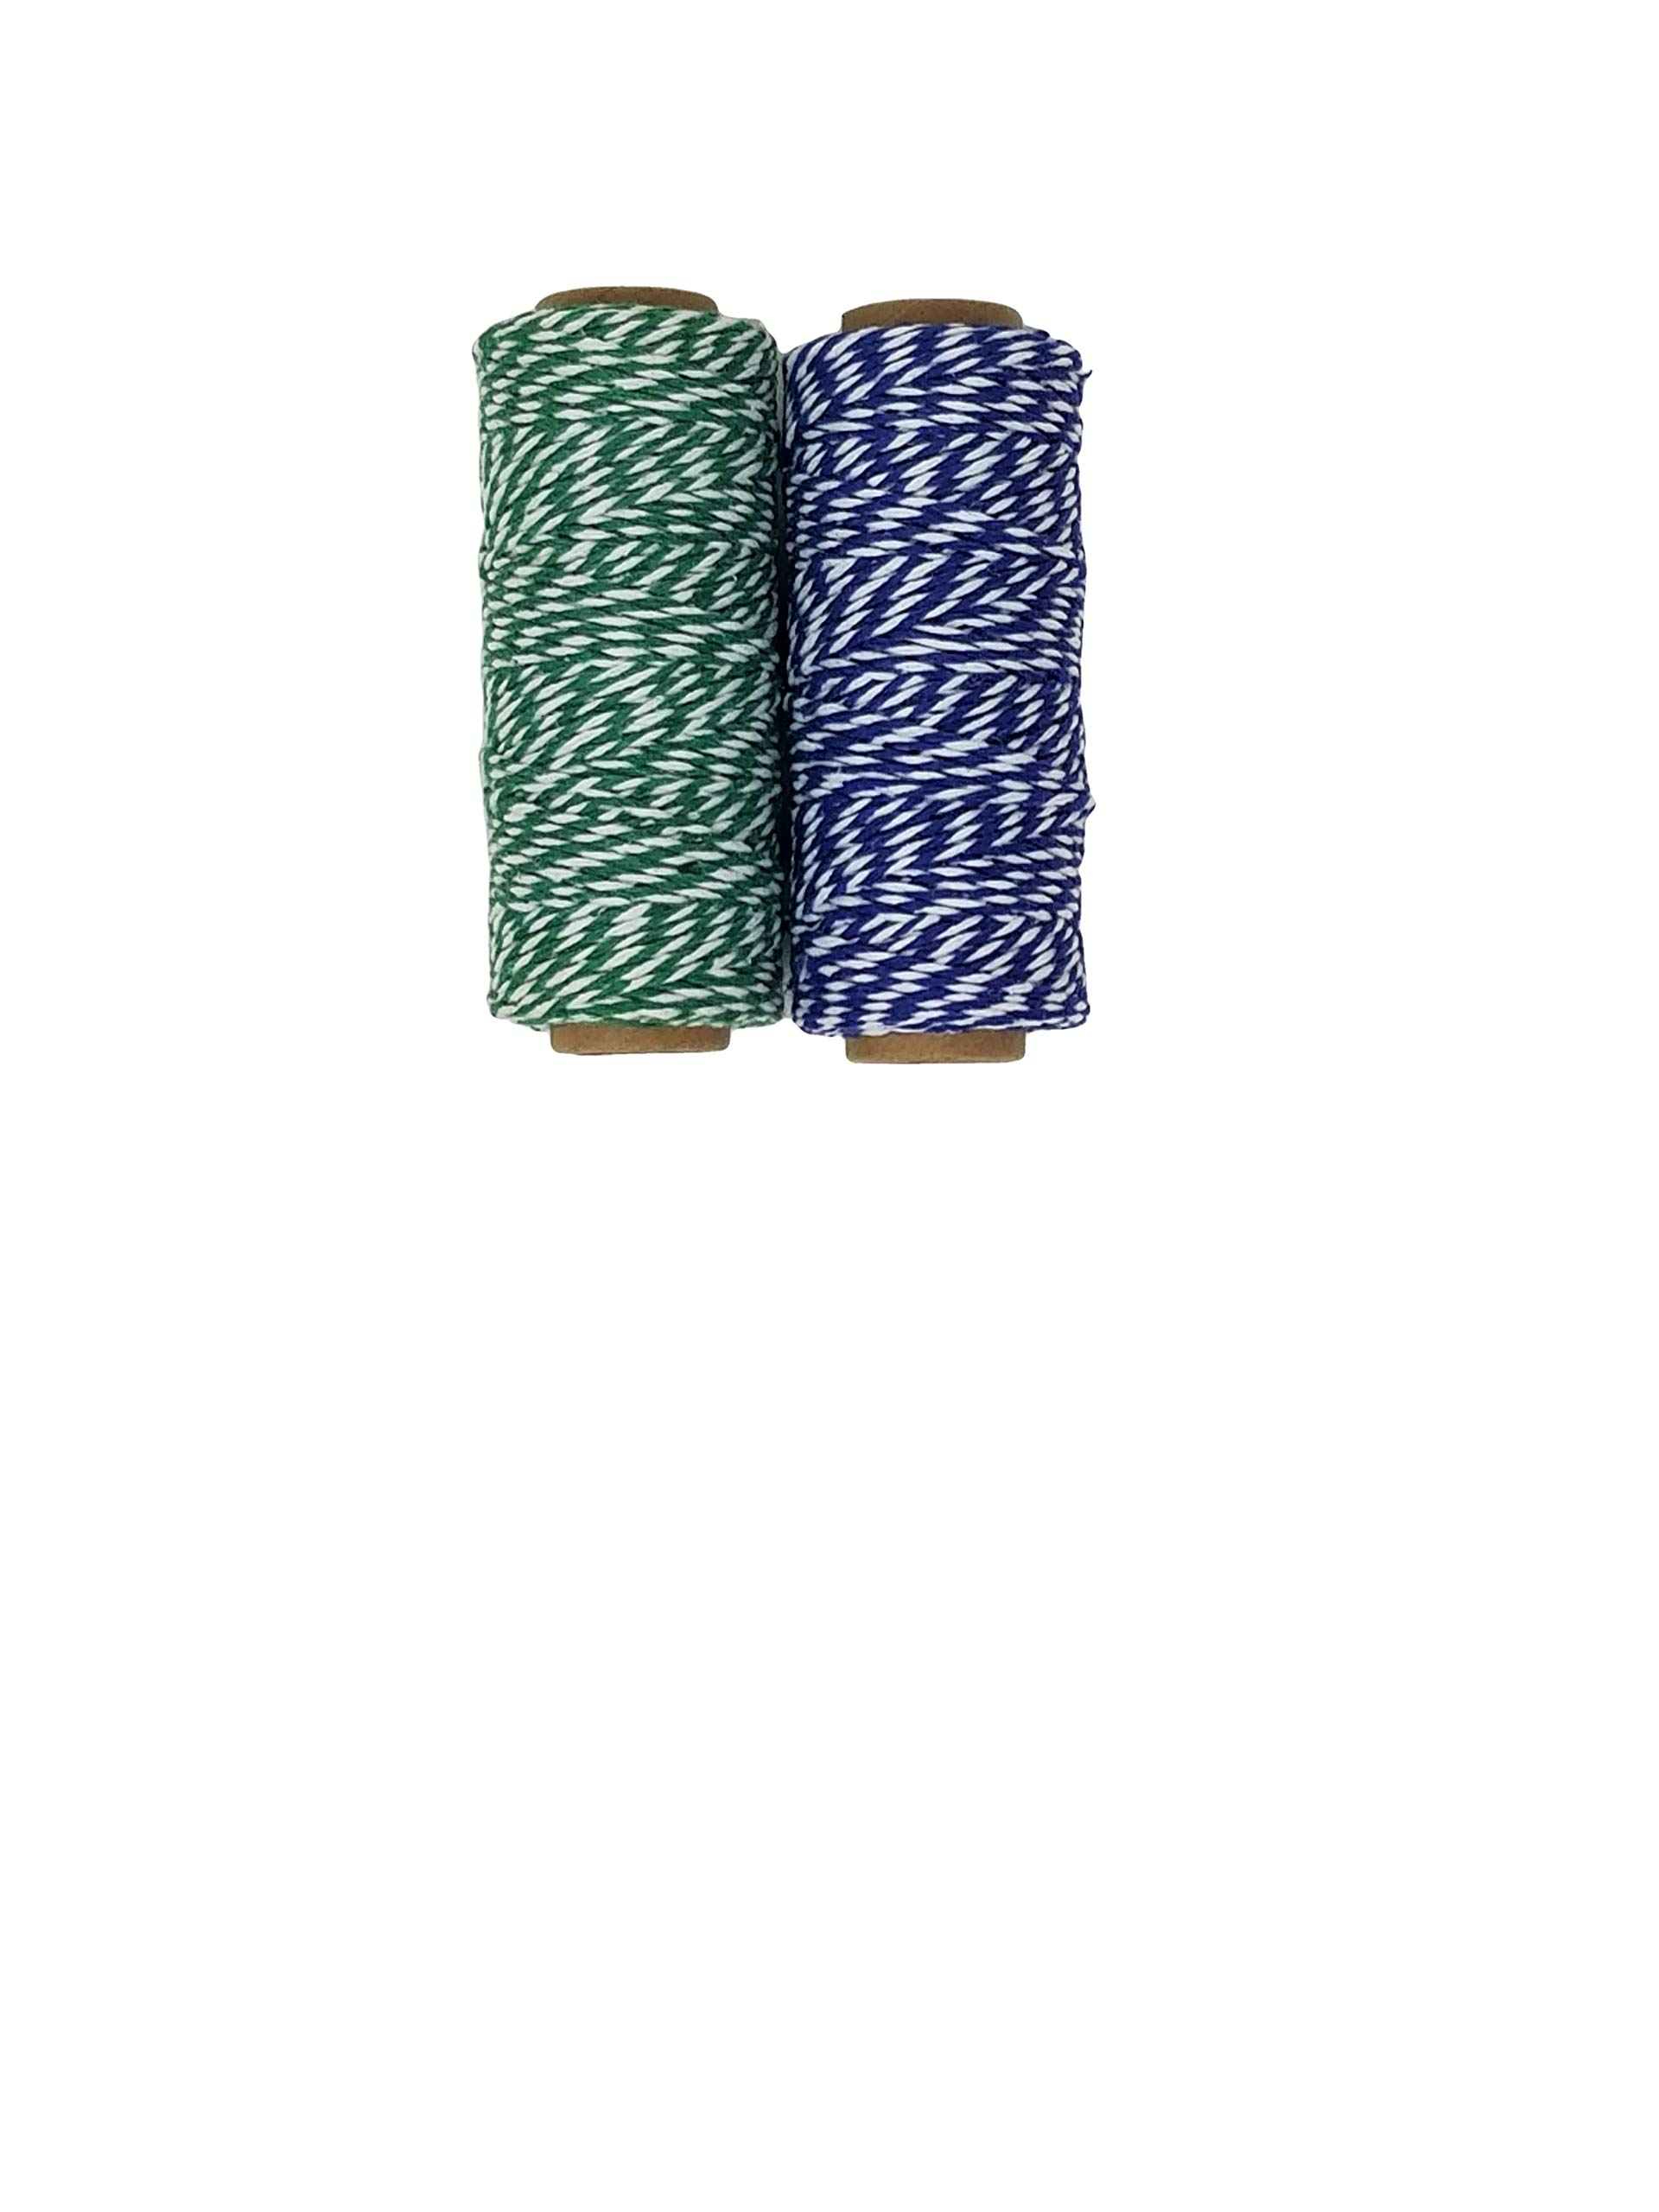 Baker\'s Twine Metallic Set with Woven-in Gold Filament, 250 Yards Total